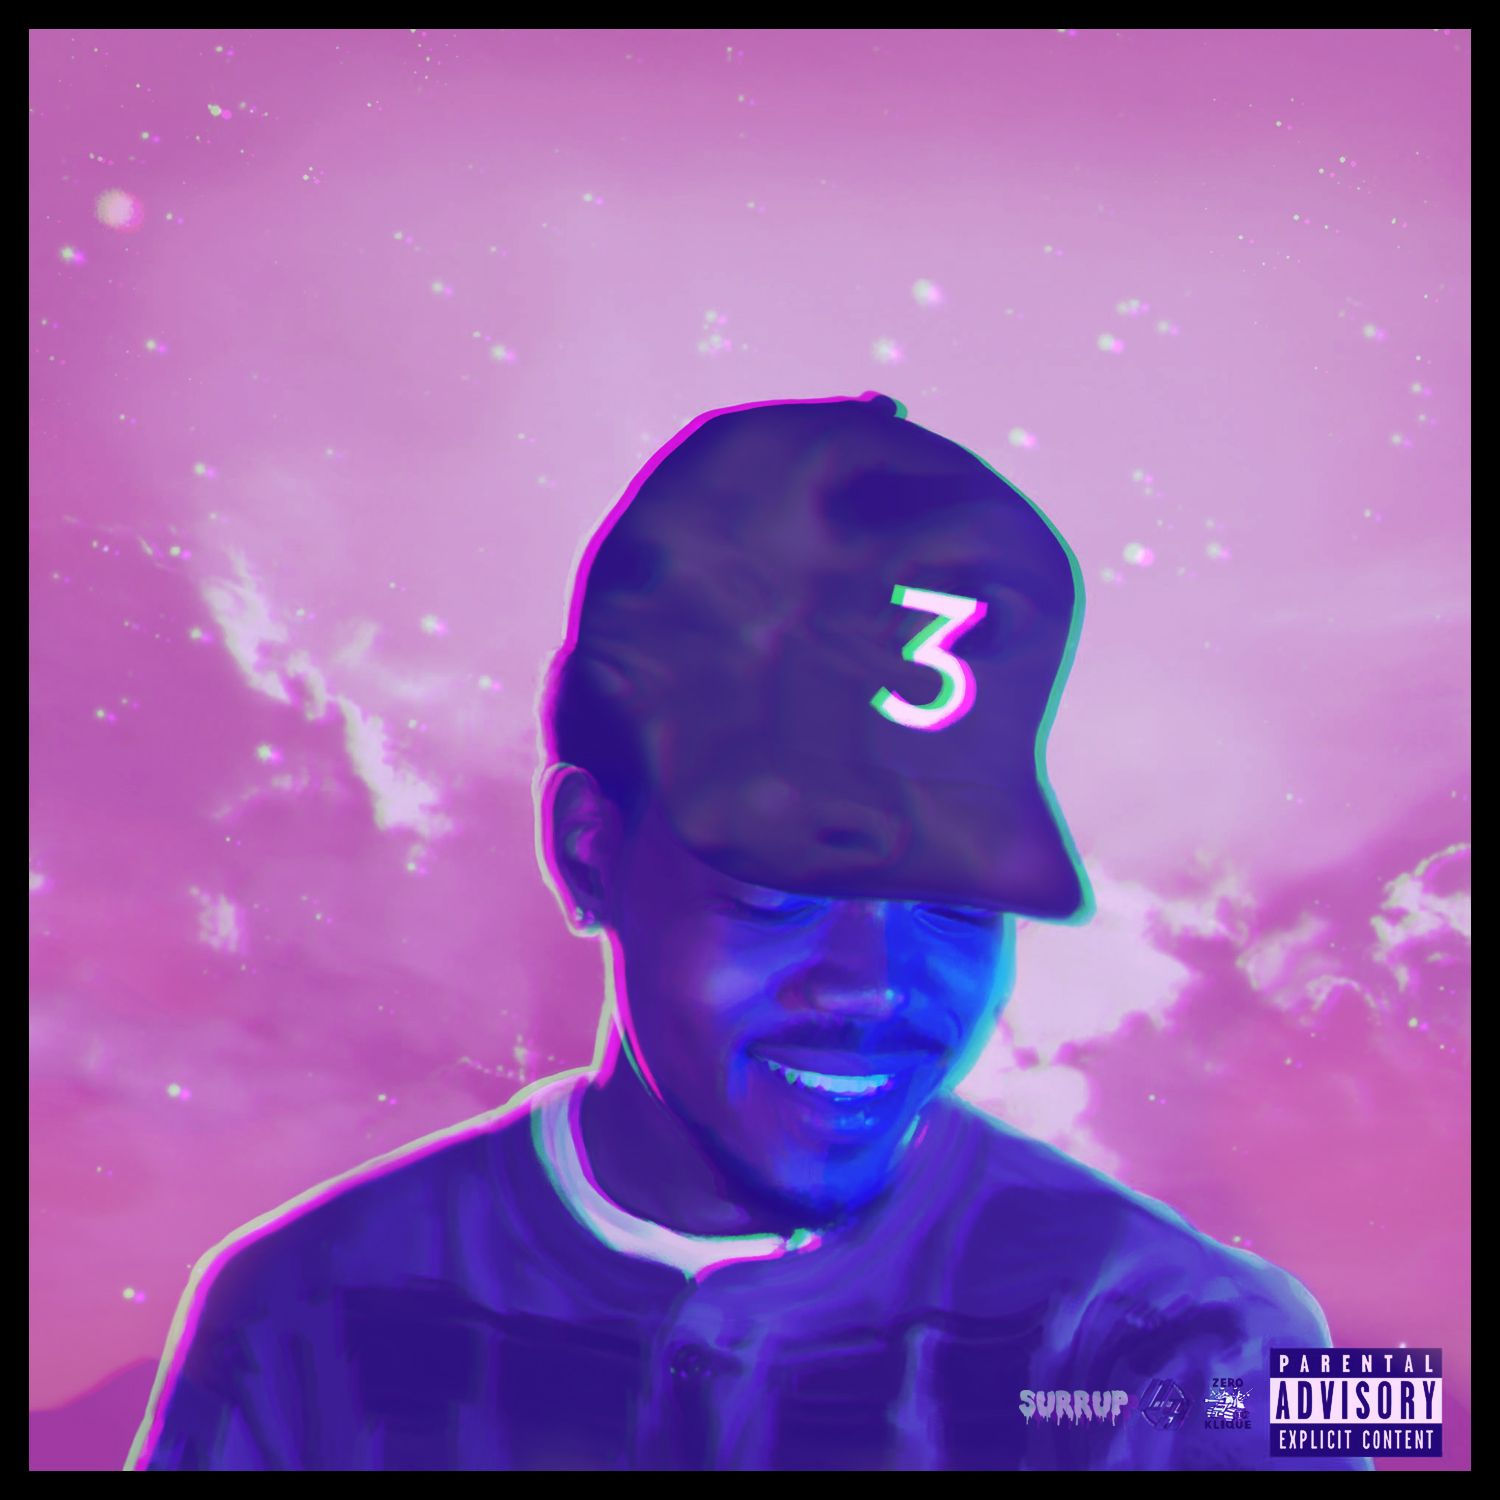 Coloring Book Chance The Rapper Cover Mission Impossible Fallout